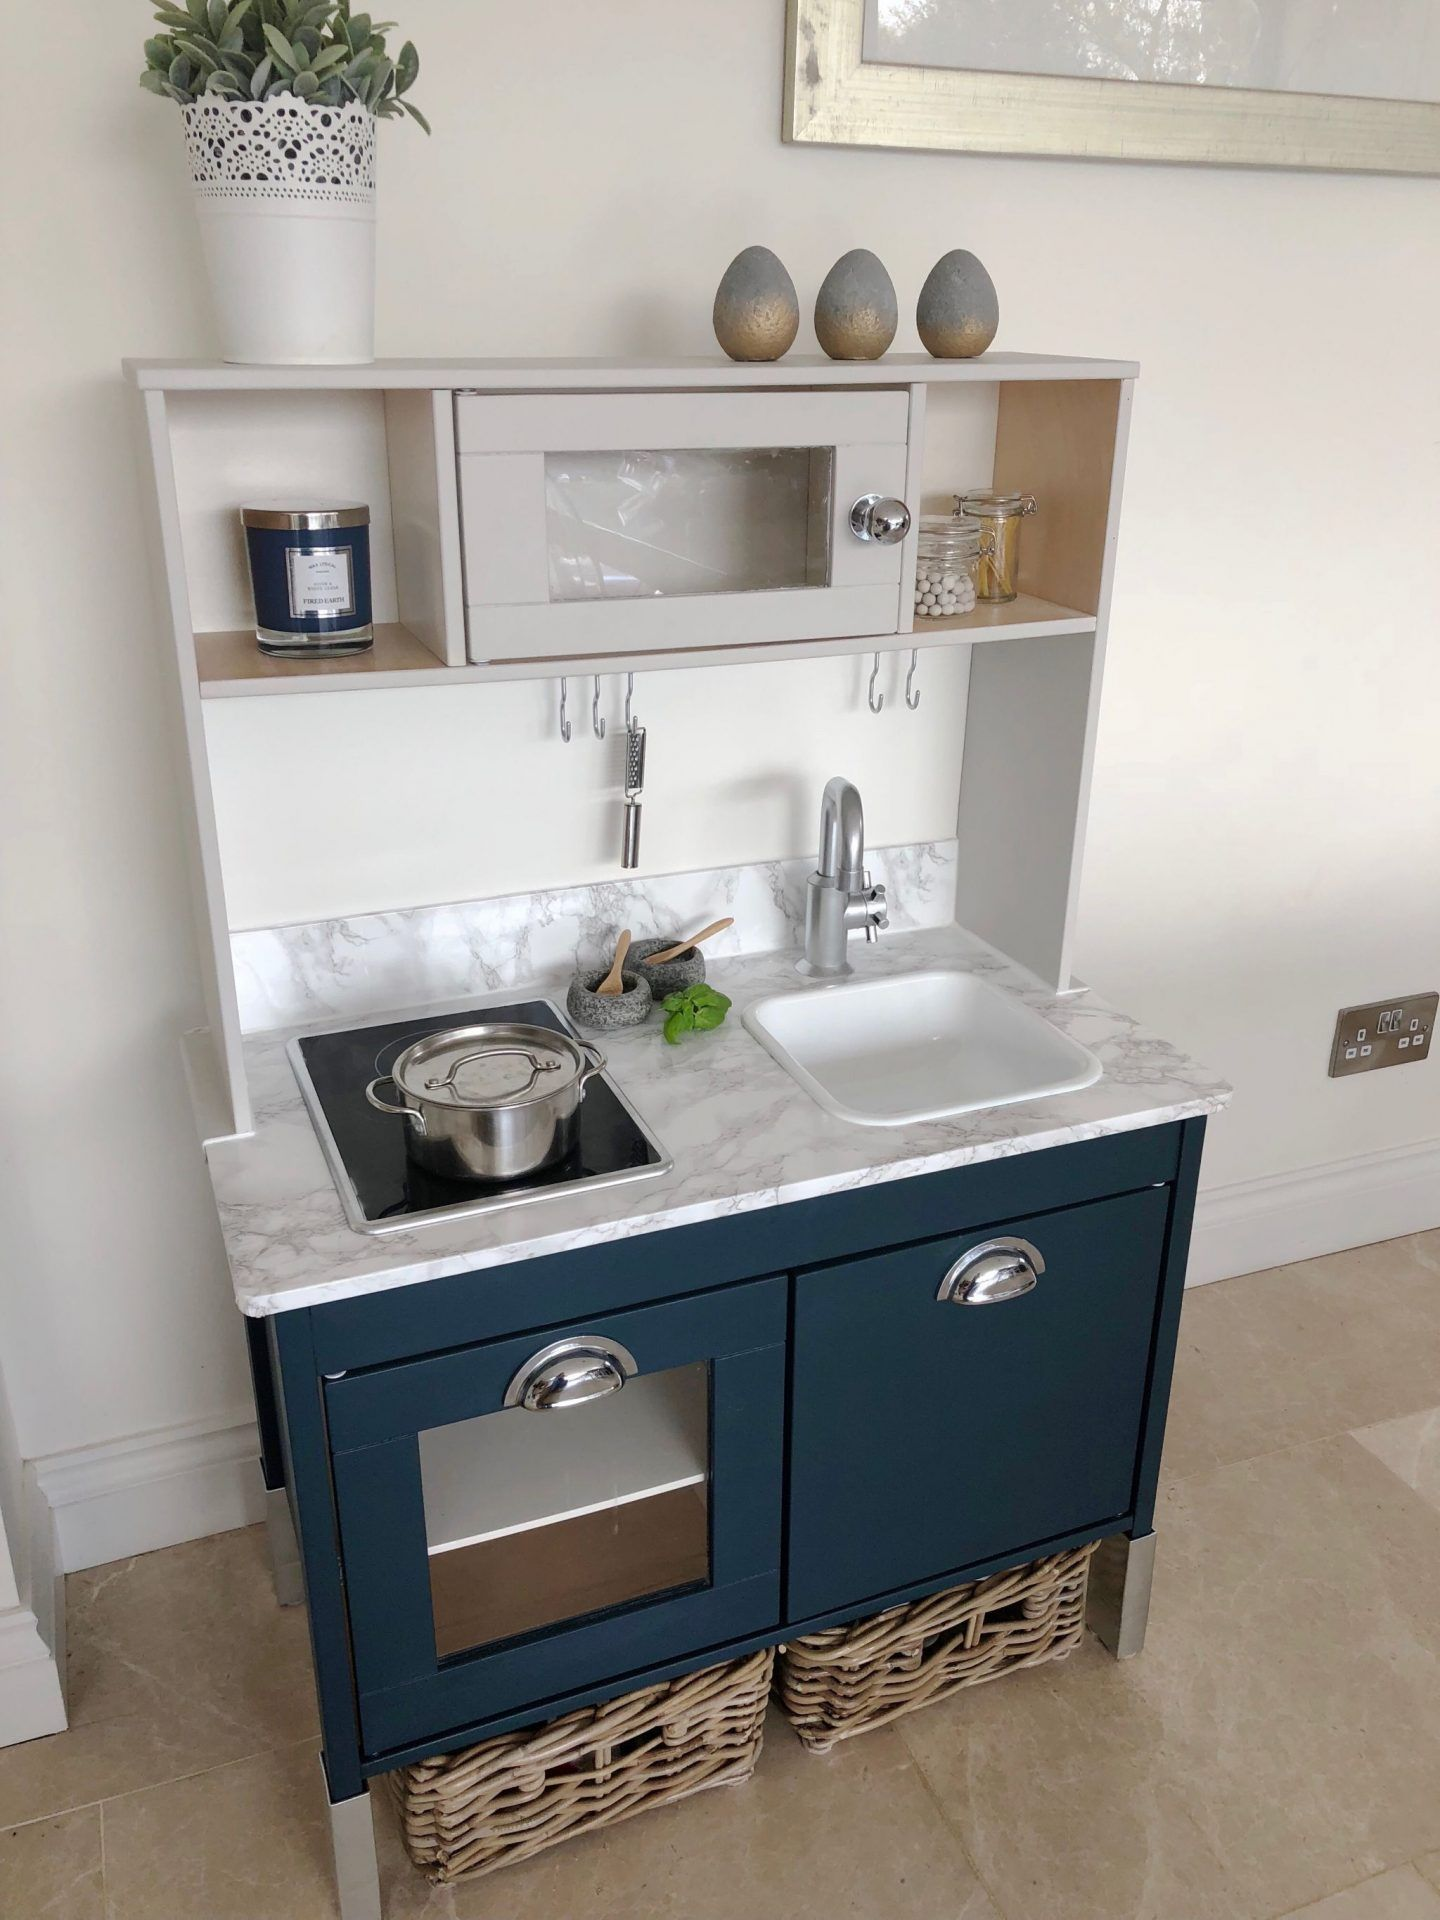 Just A Little Tom Howley Kitchen Ikeahack Ikea Play Kitchen Hack